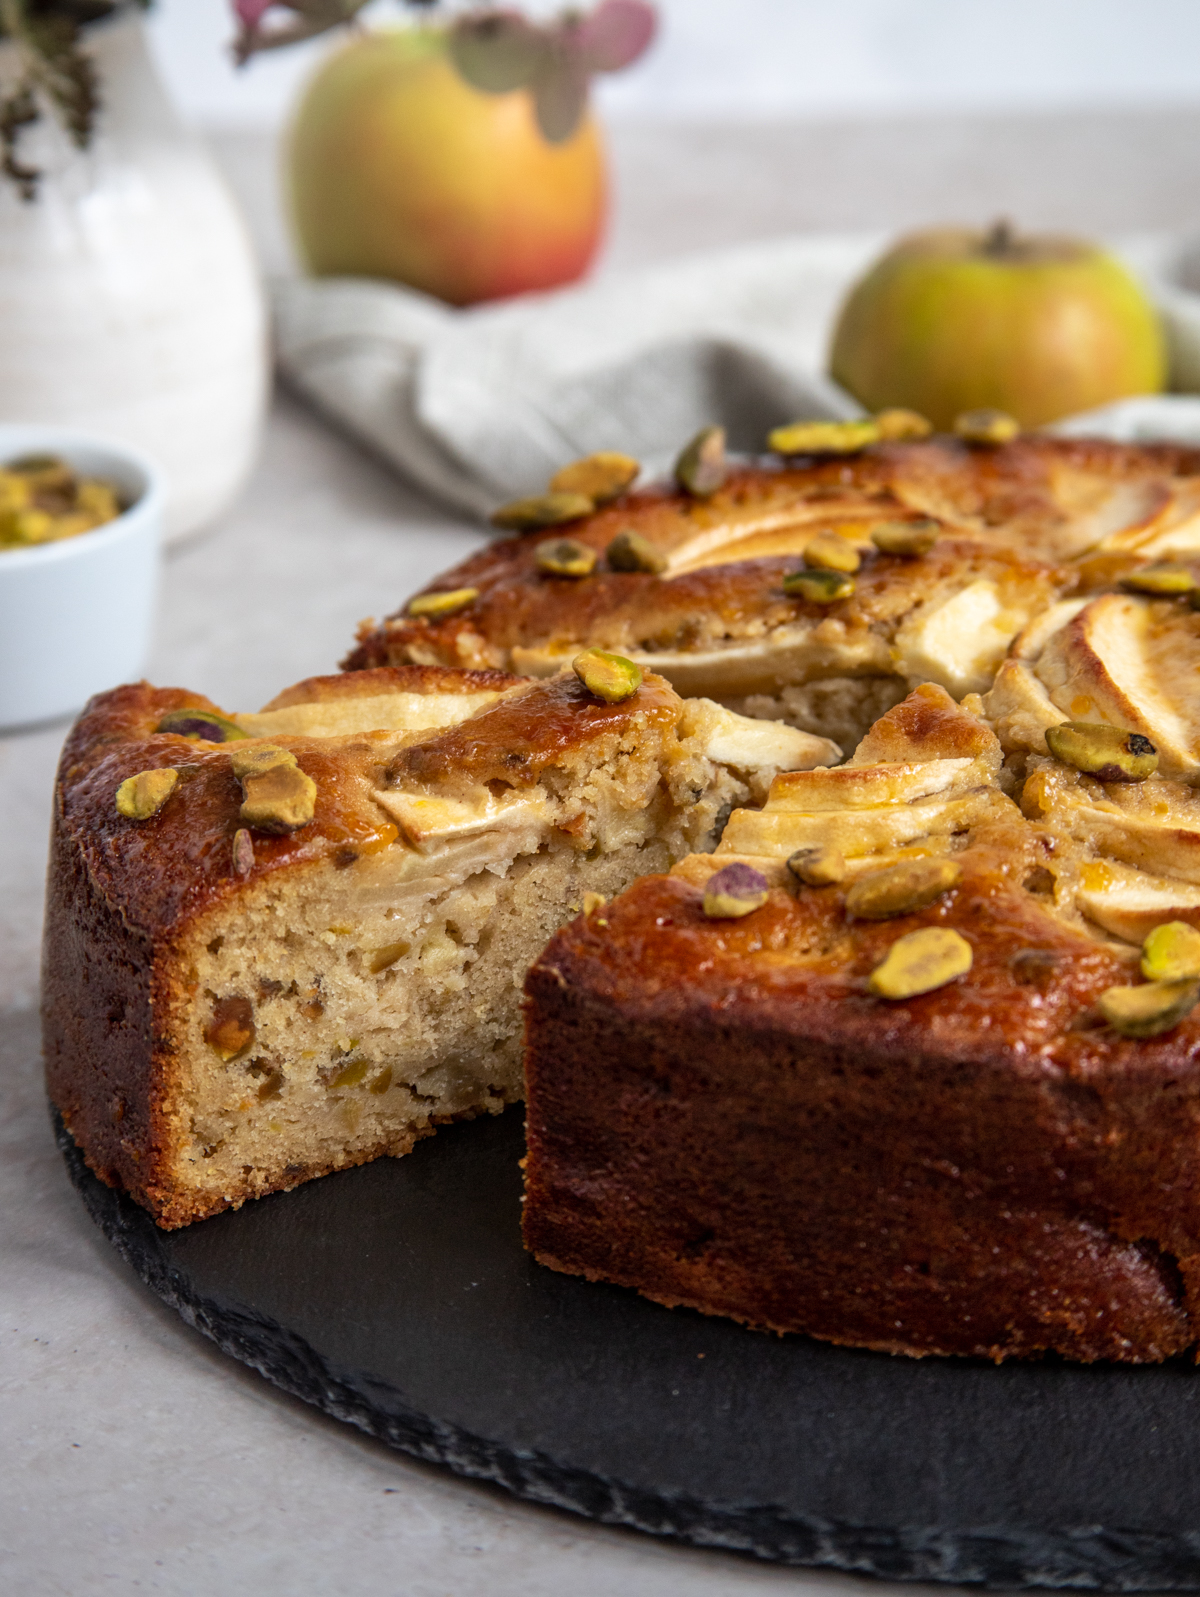 Apple cake on black cake plate surrounded by apples and an antique cutting knife.